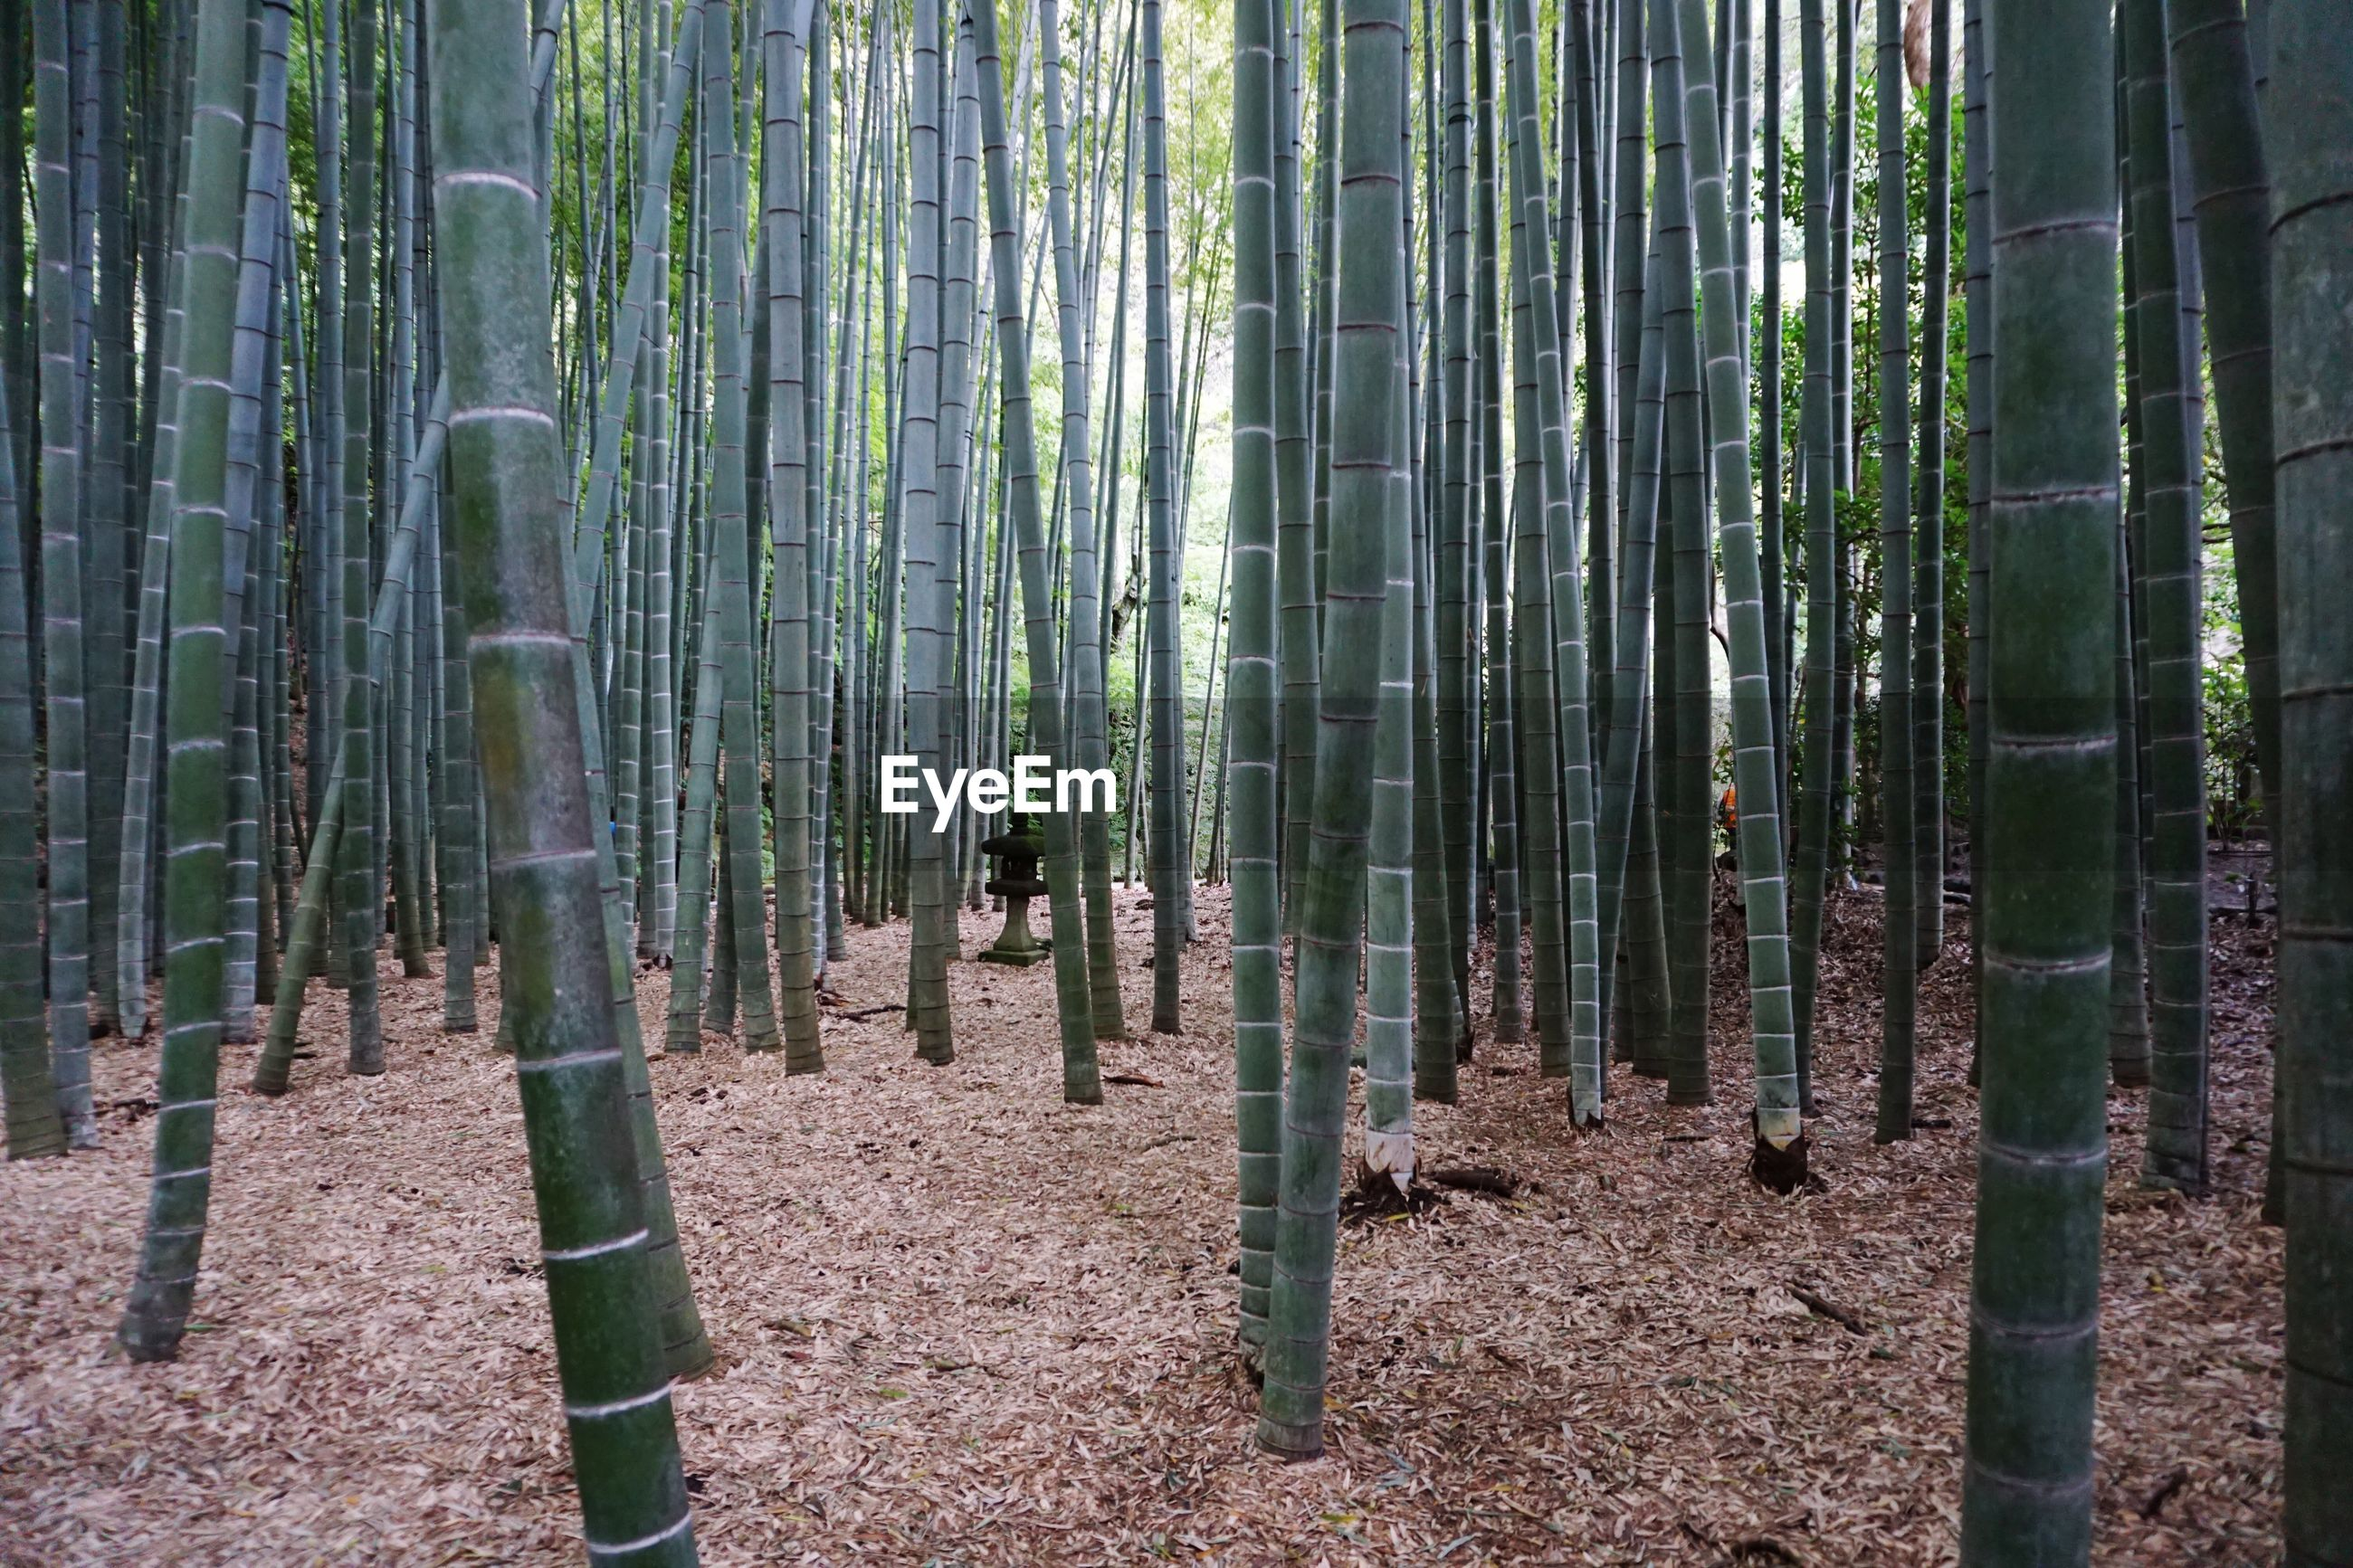 forest, tree, plant, land, growth, bamboo, bamboo - plant, bamboo grove, beauty in nature, tranquility, trunk, tree trunk, nature, day, woodland, no people, non-urban scene, tranquil scene, outdoors, green color